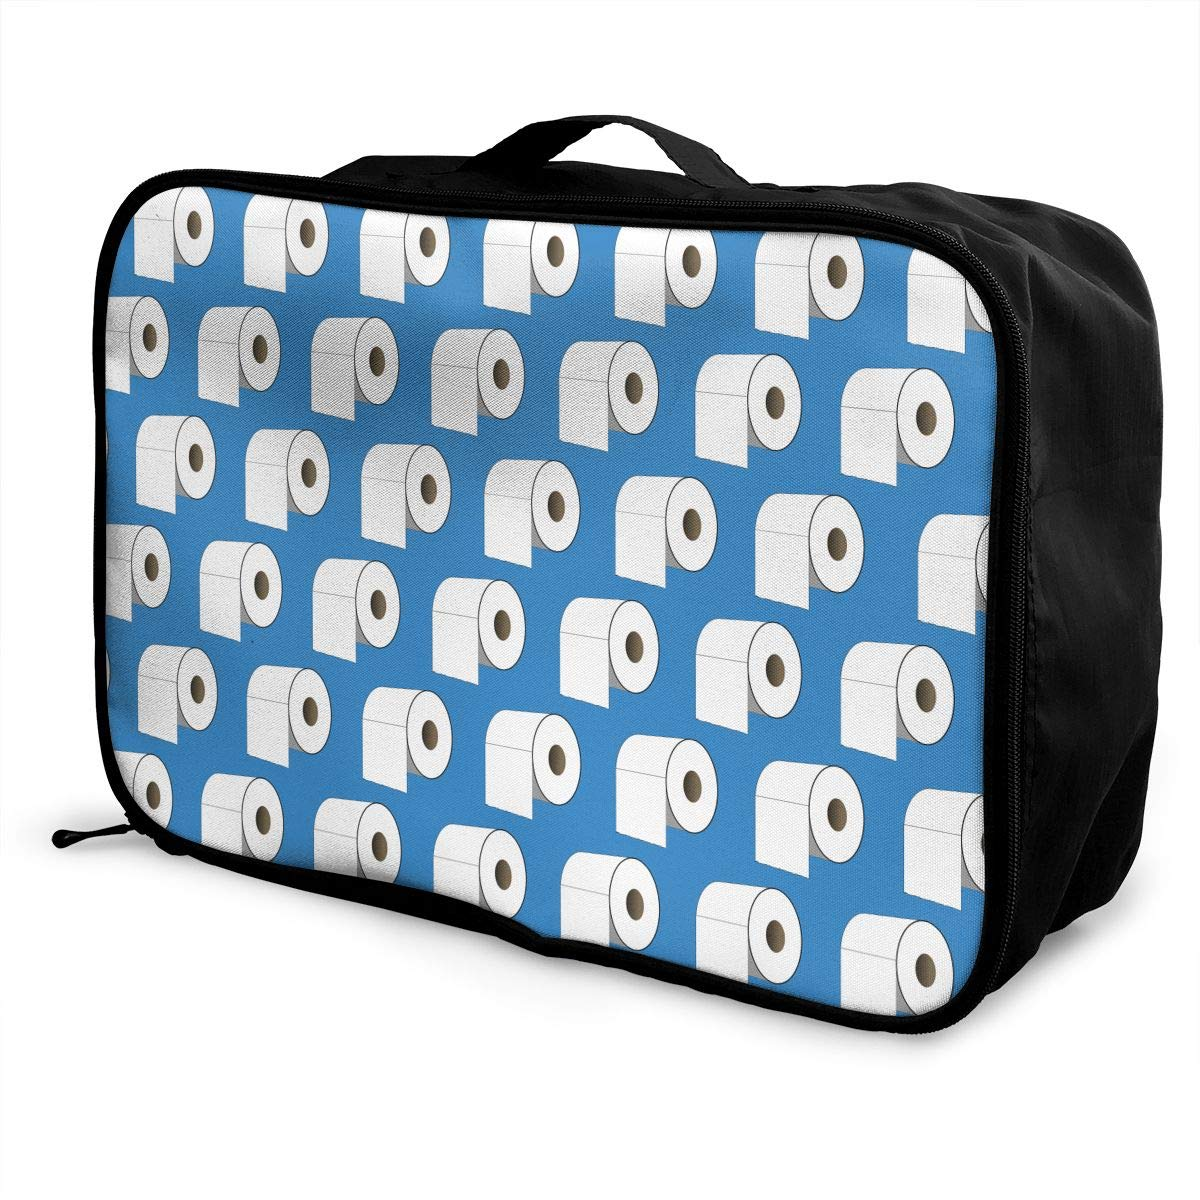 YueLJB Toilet Roll Paper Lightweight Large Capacity Portable Luggage Bag Travel Duffel Bag Storage Carry Luggage Duffle Tote Bag